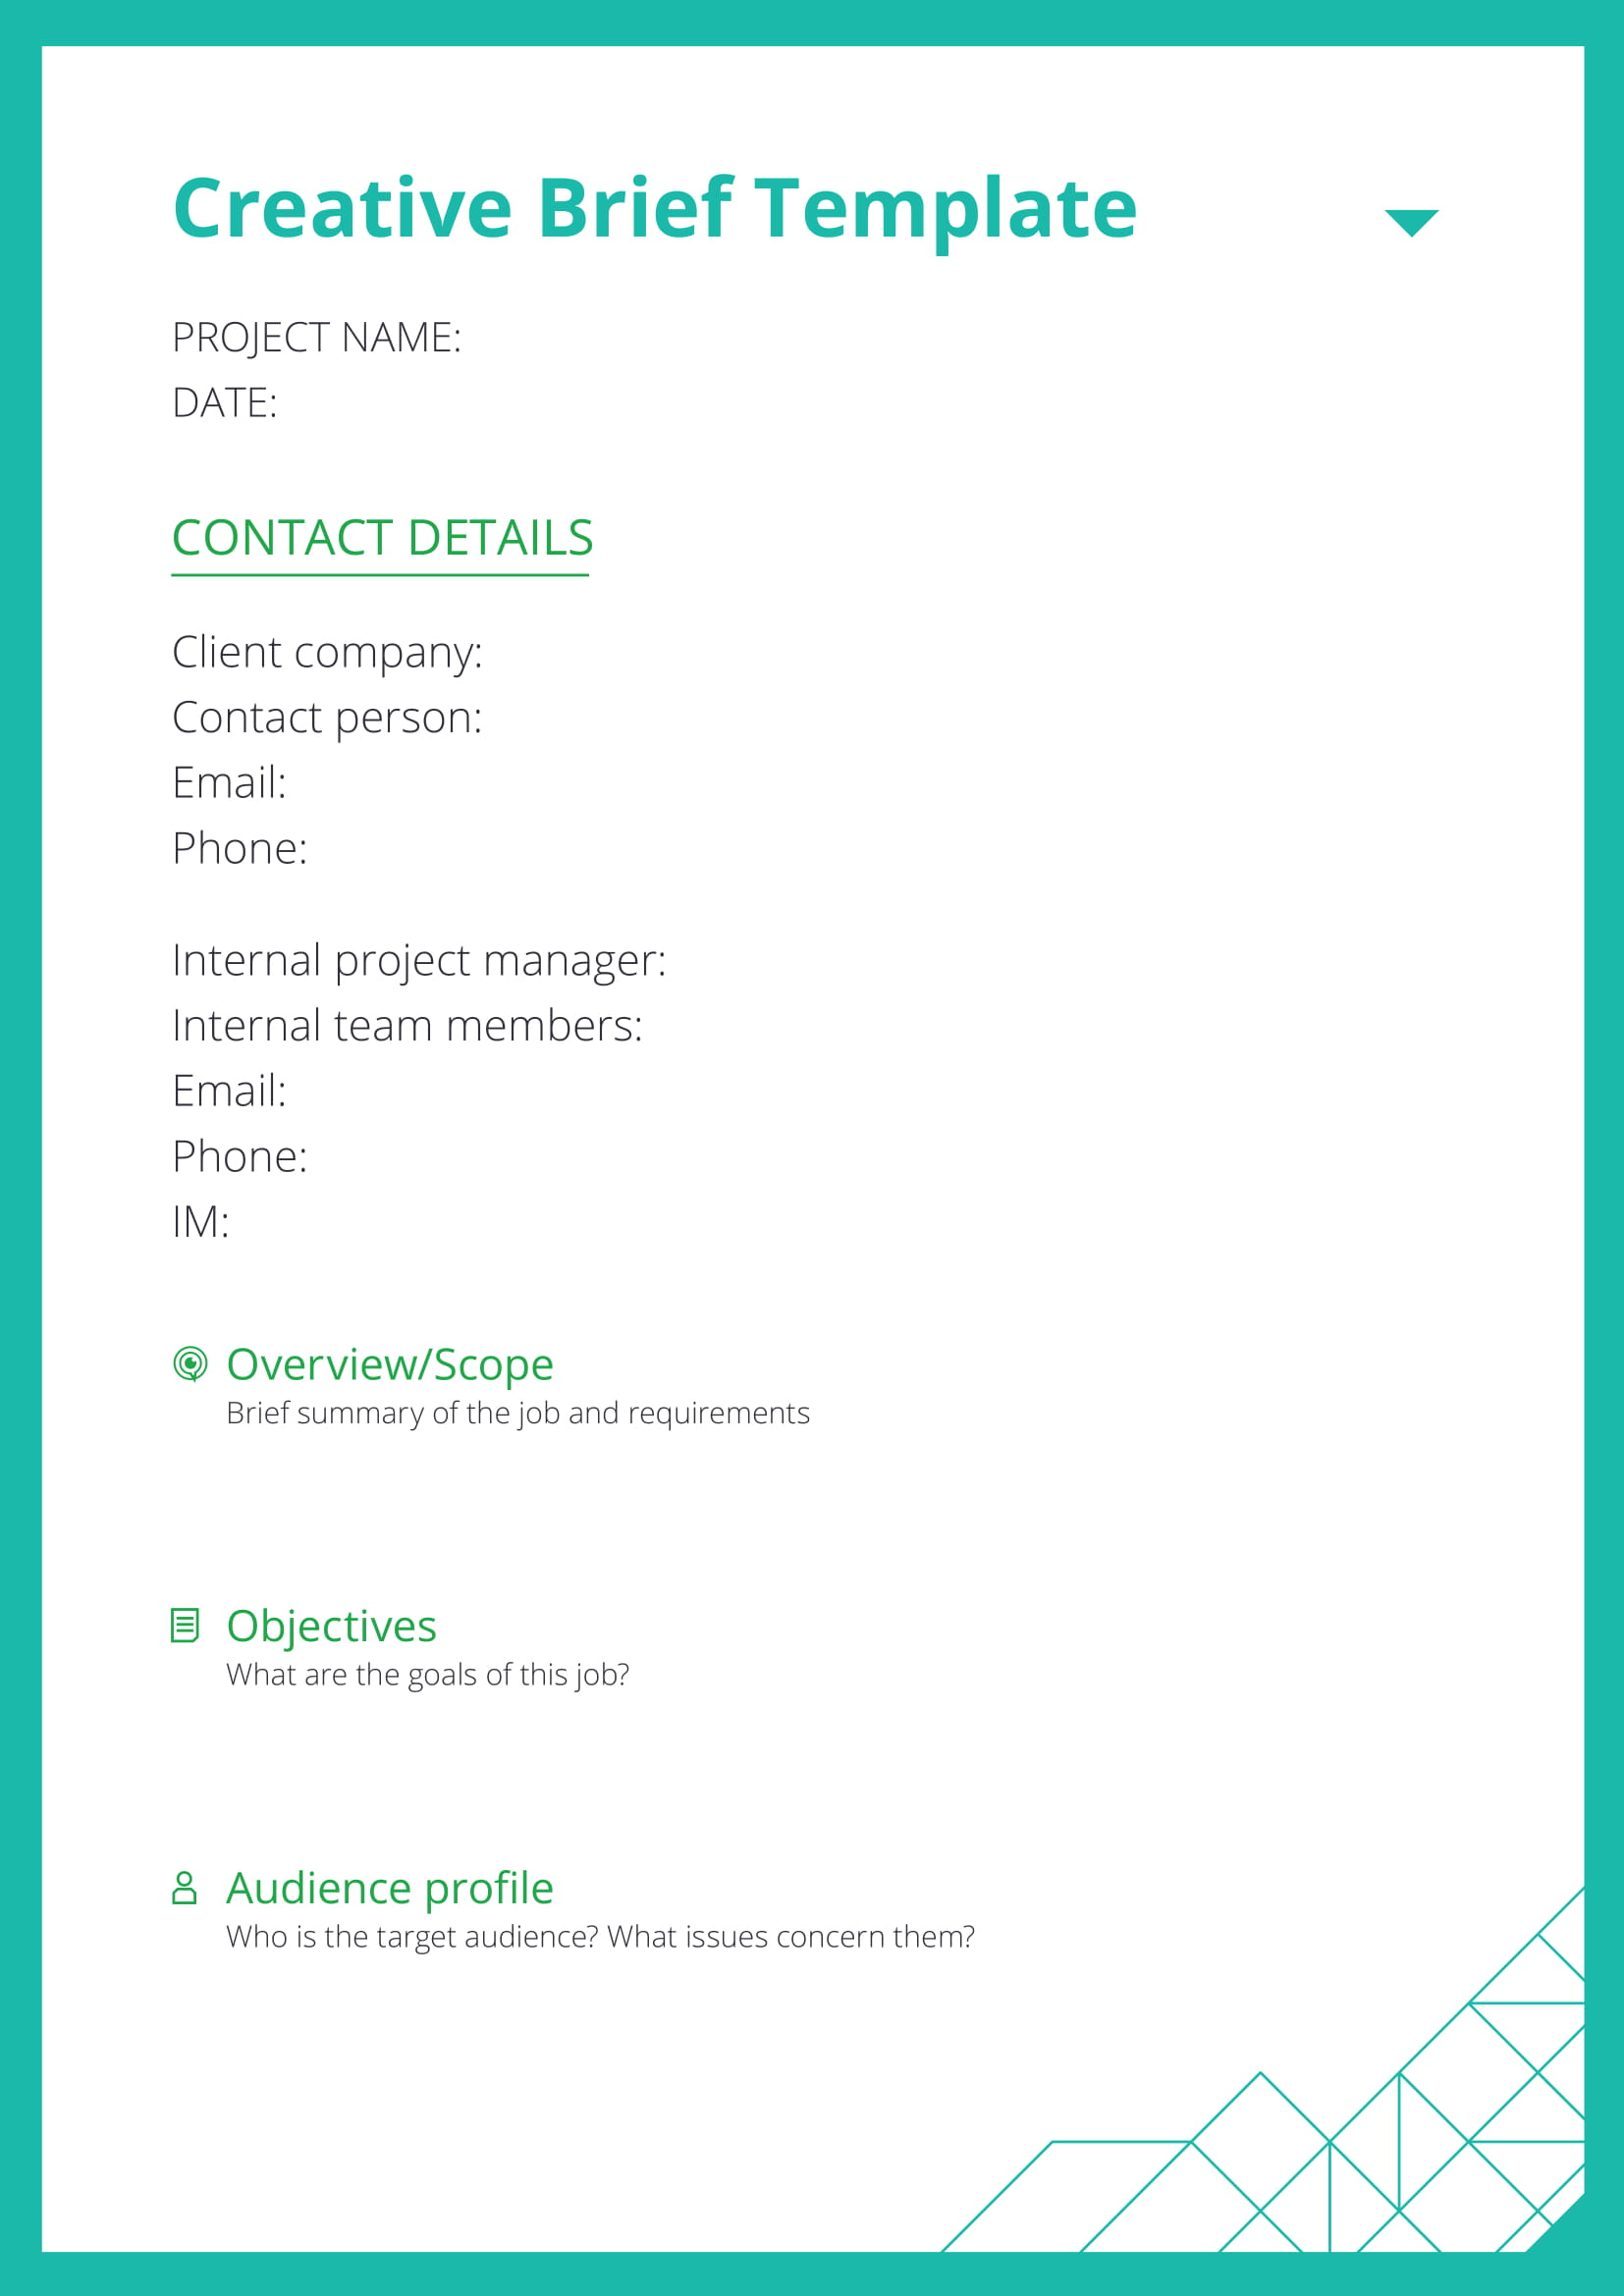 simple creative brief template example